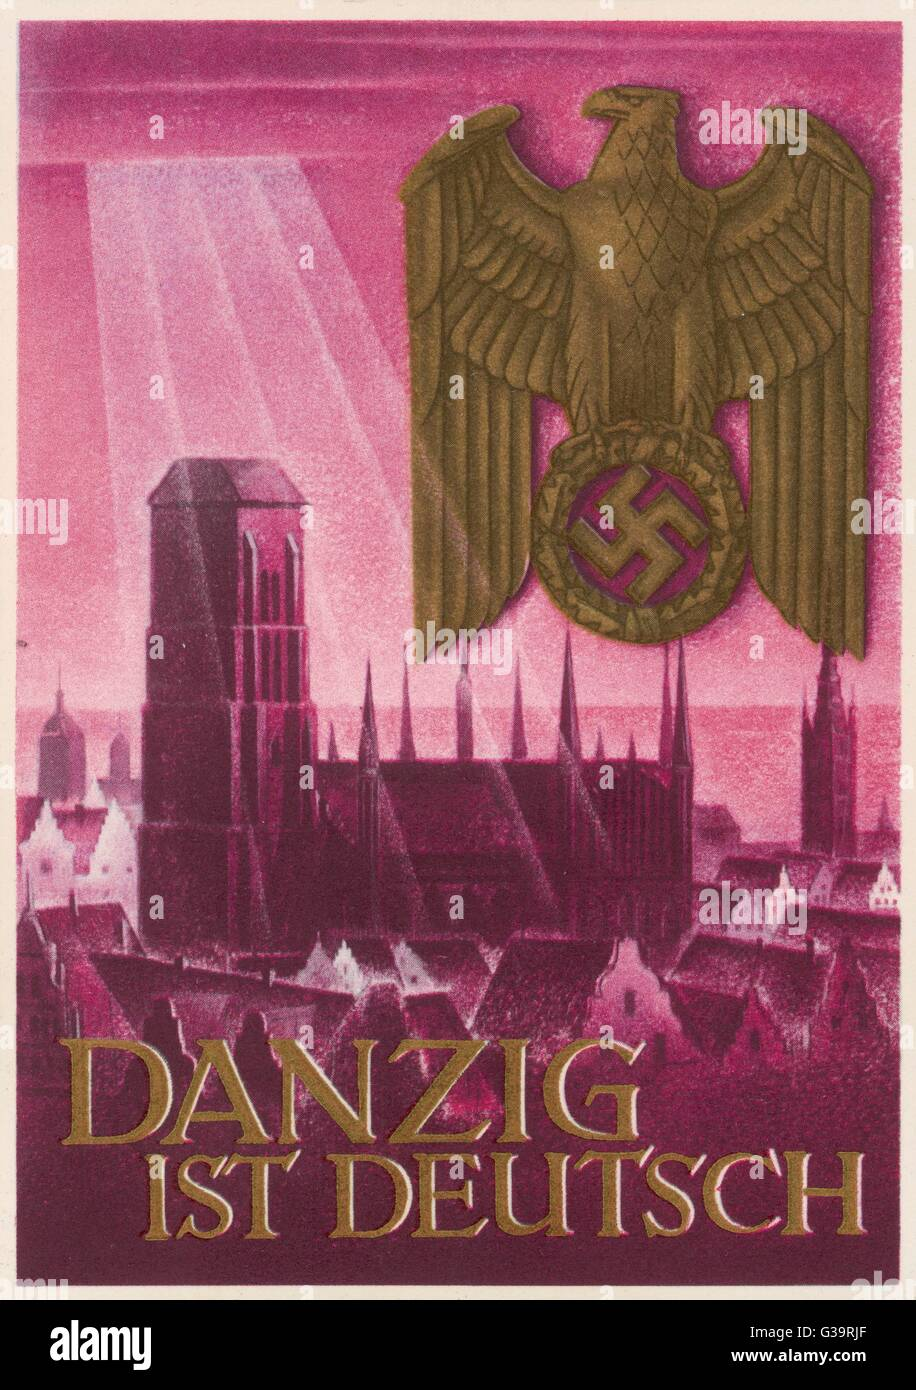 Nazi postcard claiming that  Danzig belongs to Germany and  not to Poland.       Date: 1939 Stock Photo